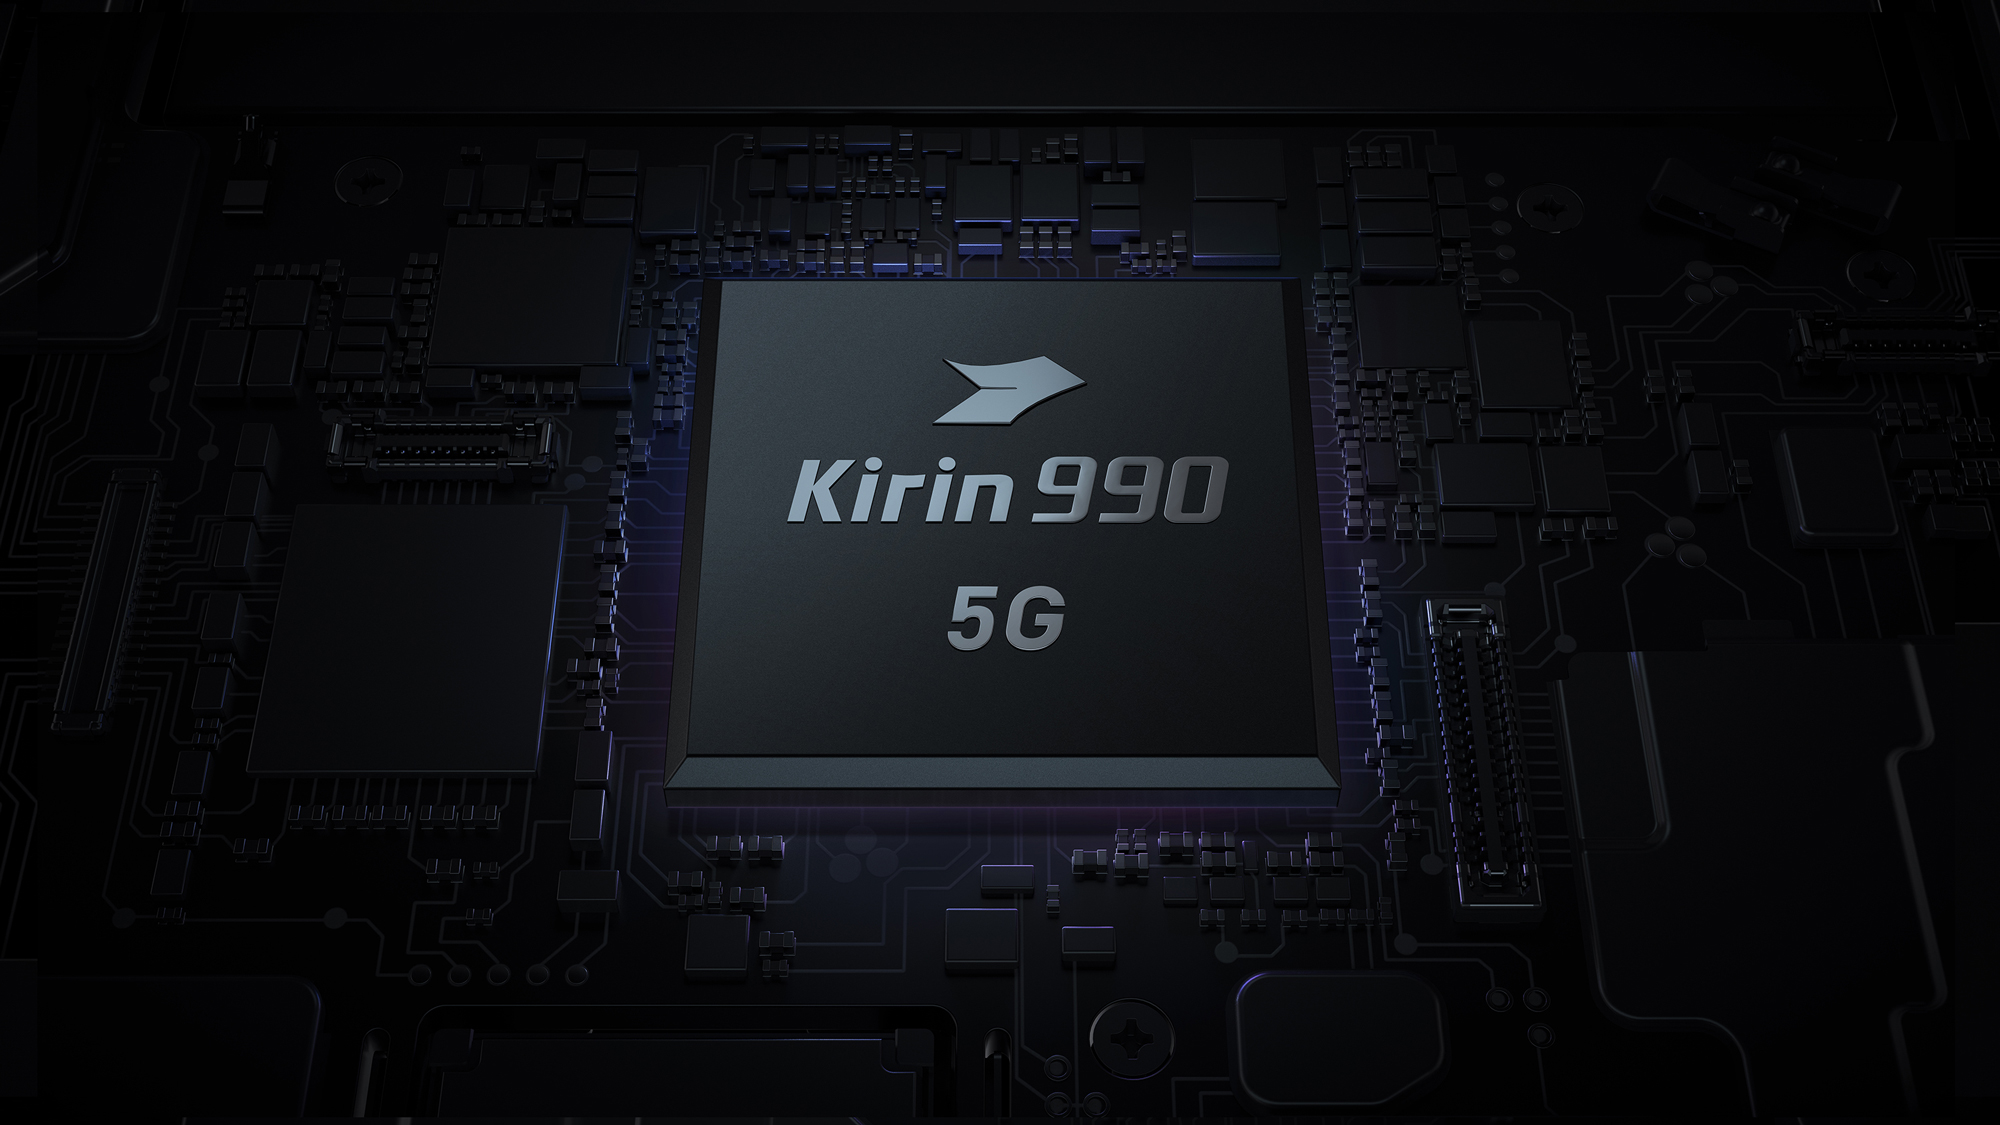 The Kirin 990. It's got 5G.